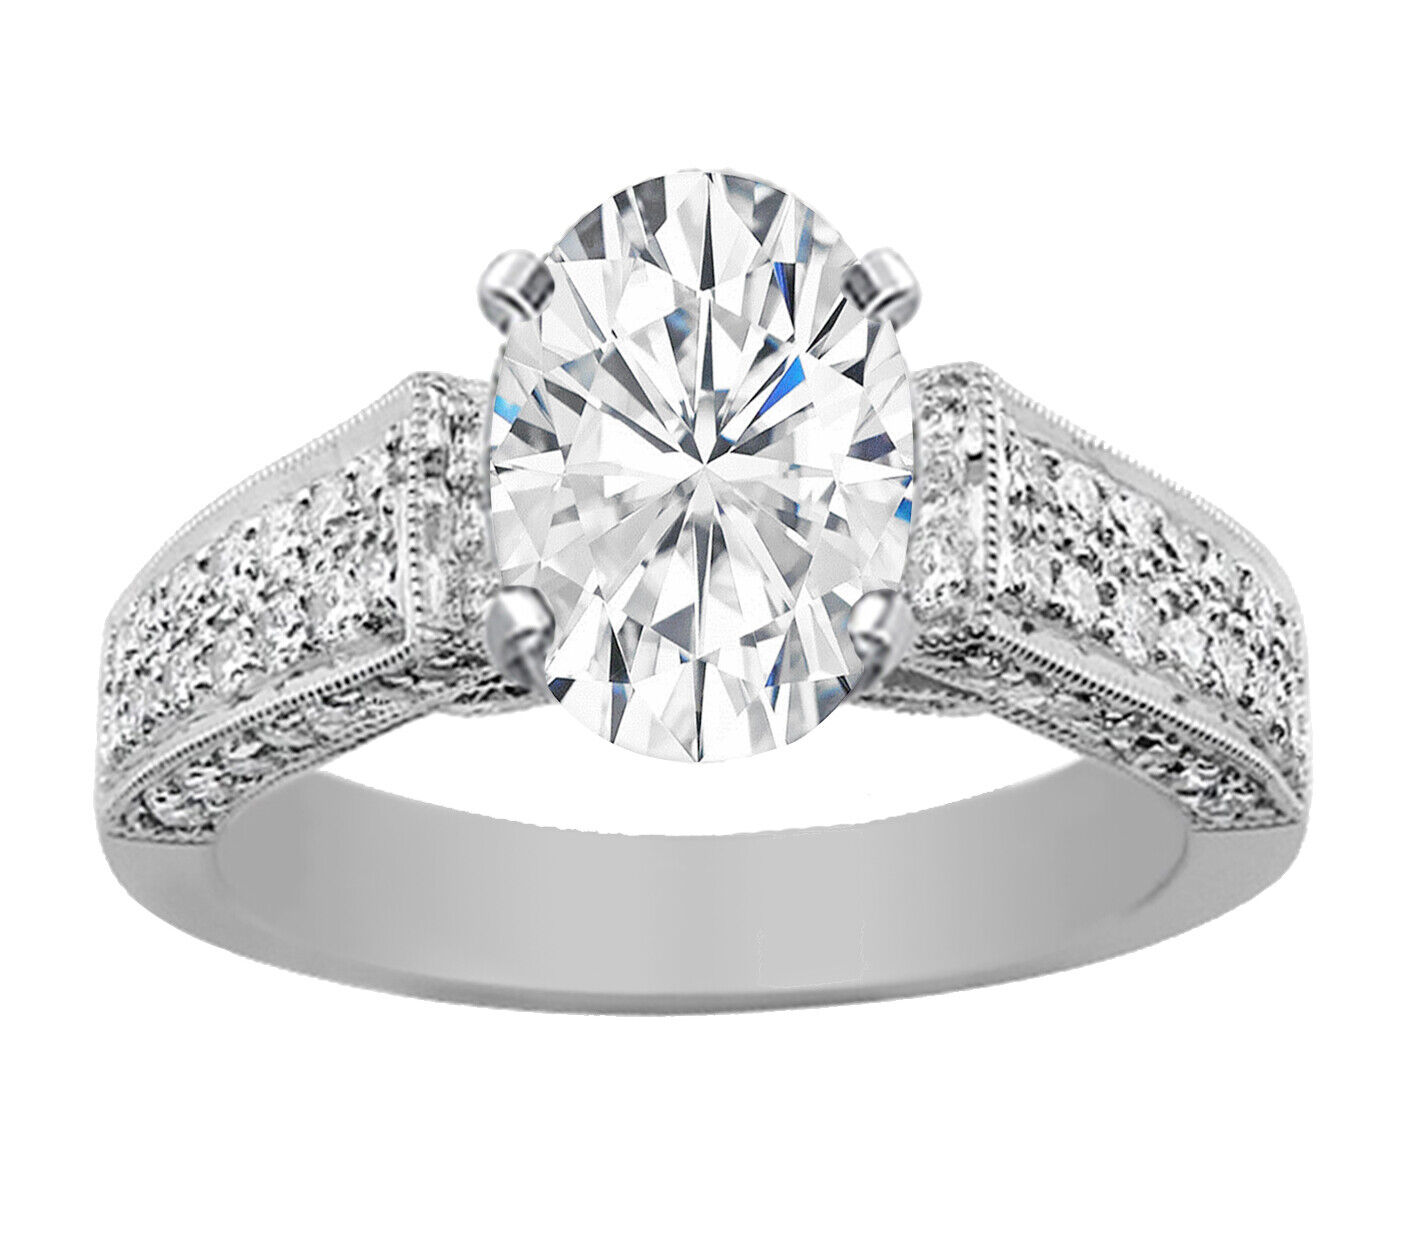 GIA Certified Diamond Engagement Ring 2.05 CT Oval Shape & Round Shape 14k Gold